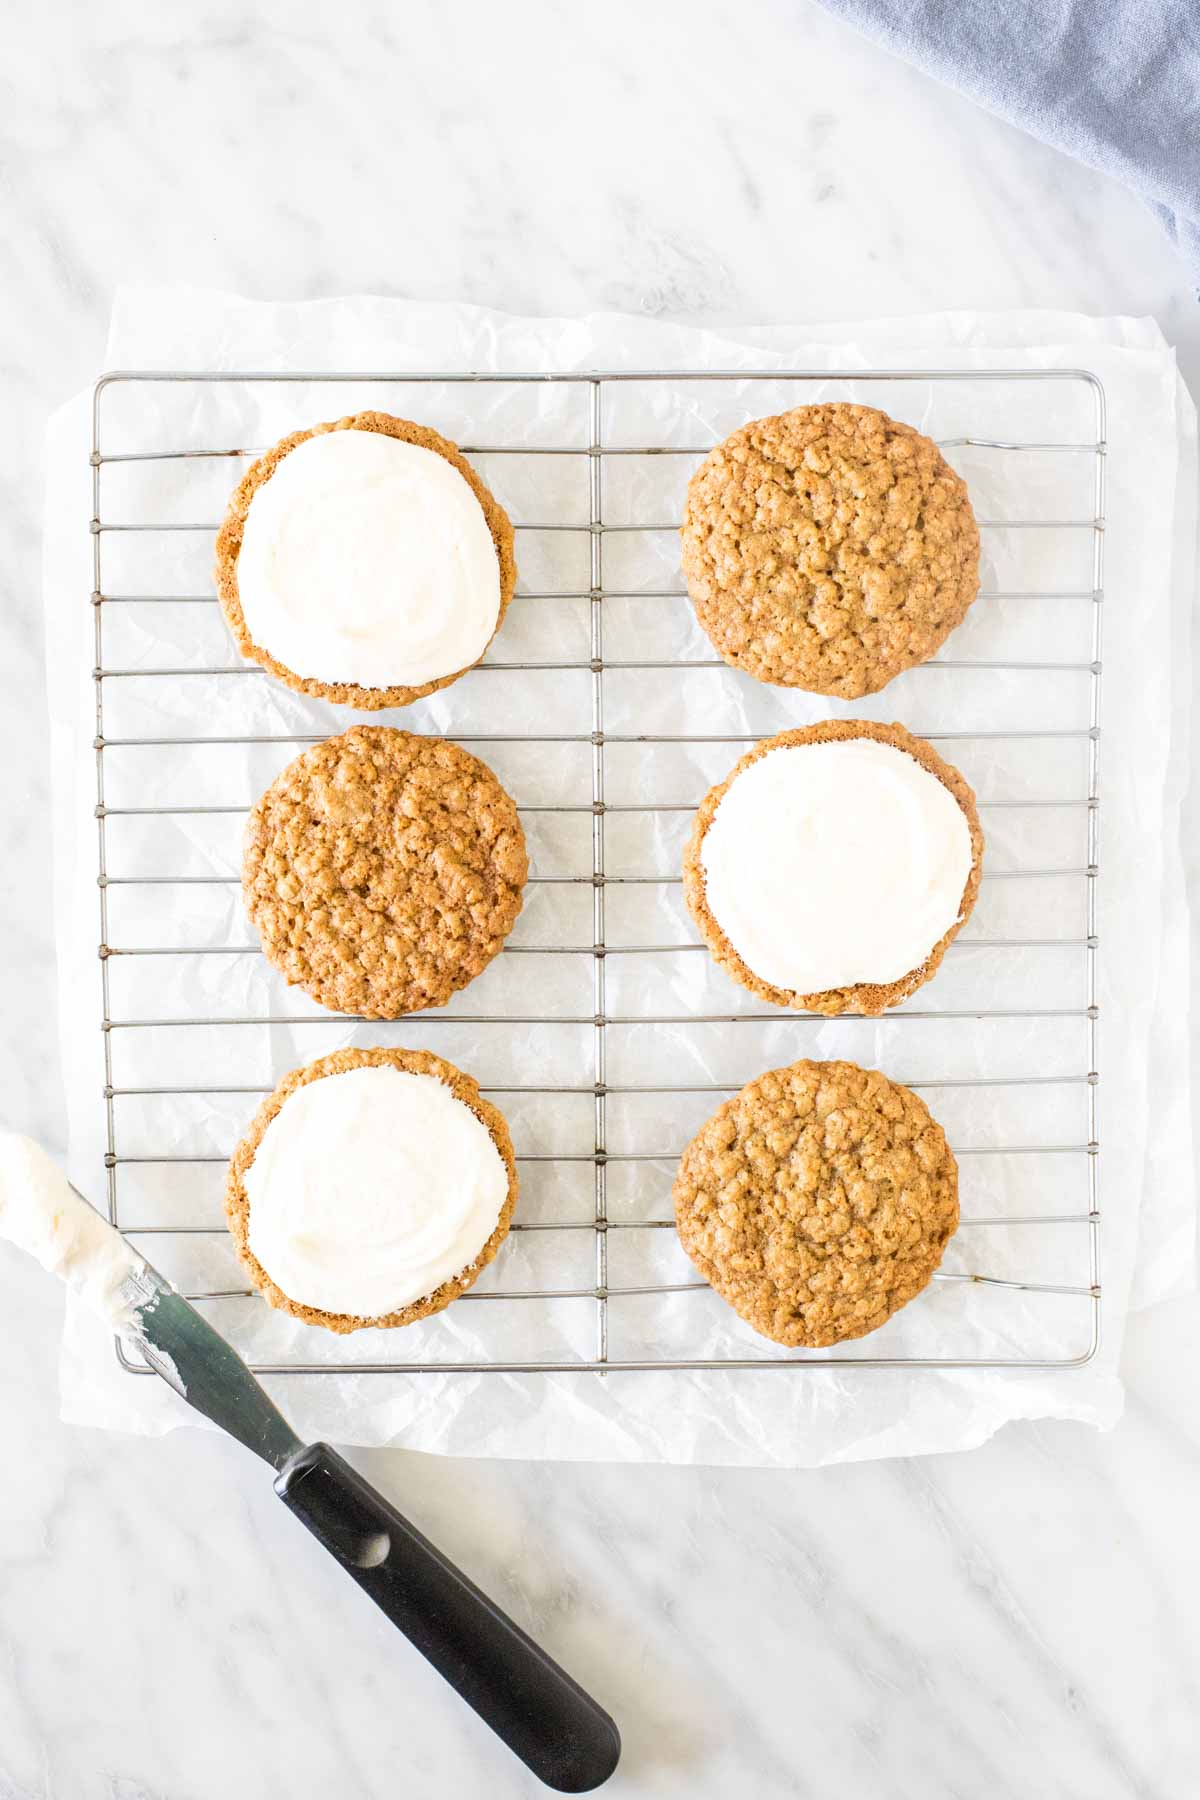 Oatmeal cookies with frosting on a wire rack.